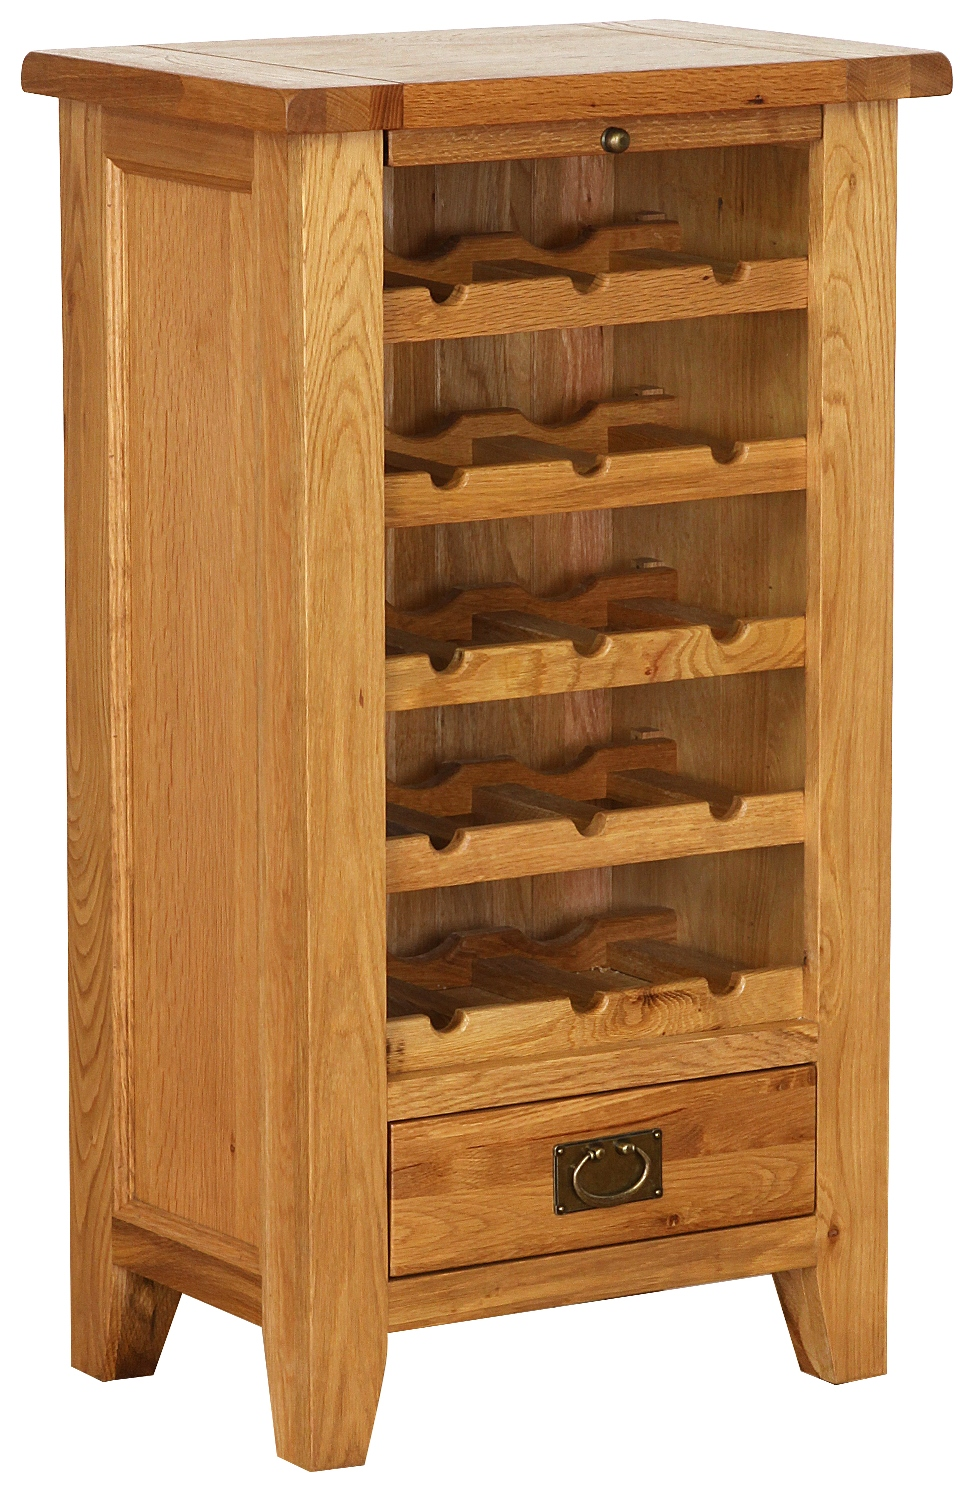 OAK COLLECION WINE RACK  w 60 x d 40 x h 106 cm  € 415  Product Code: NB045